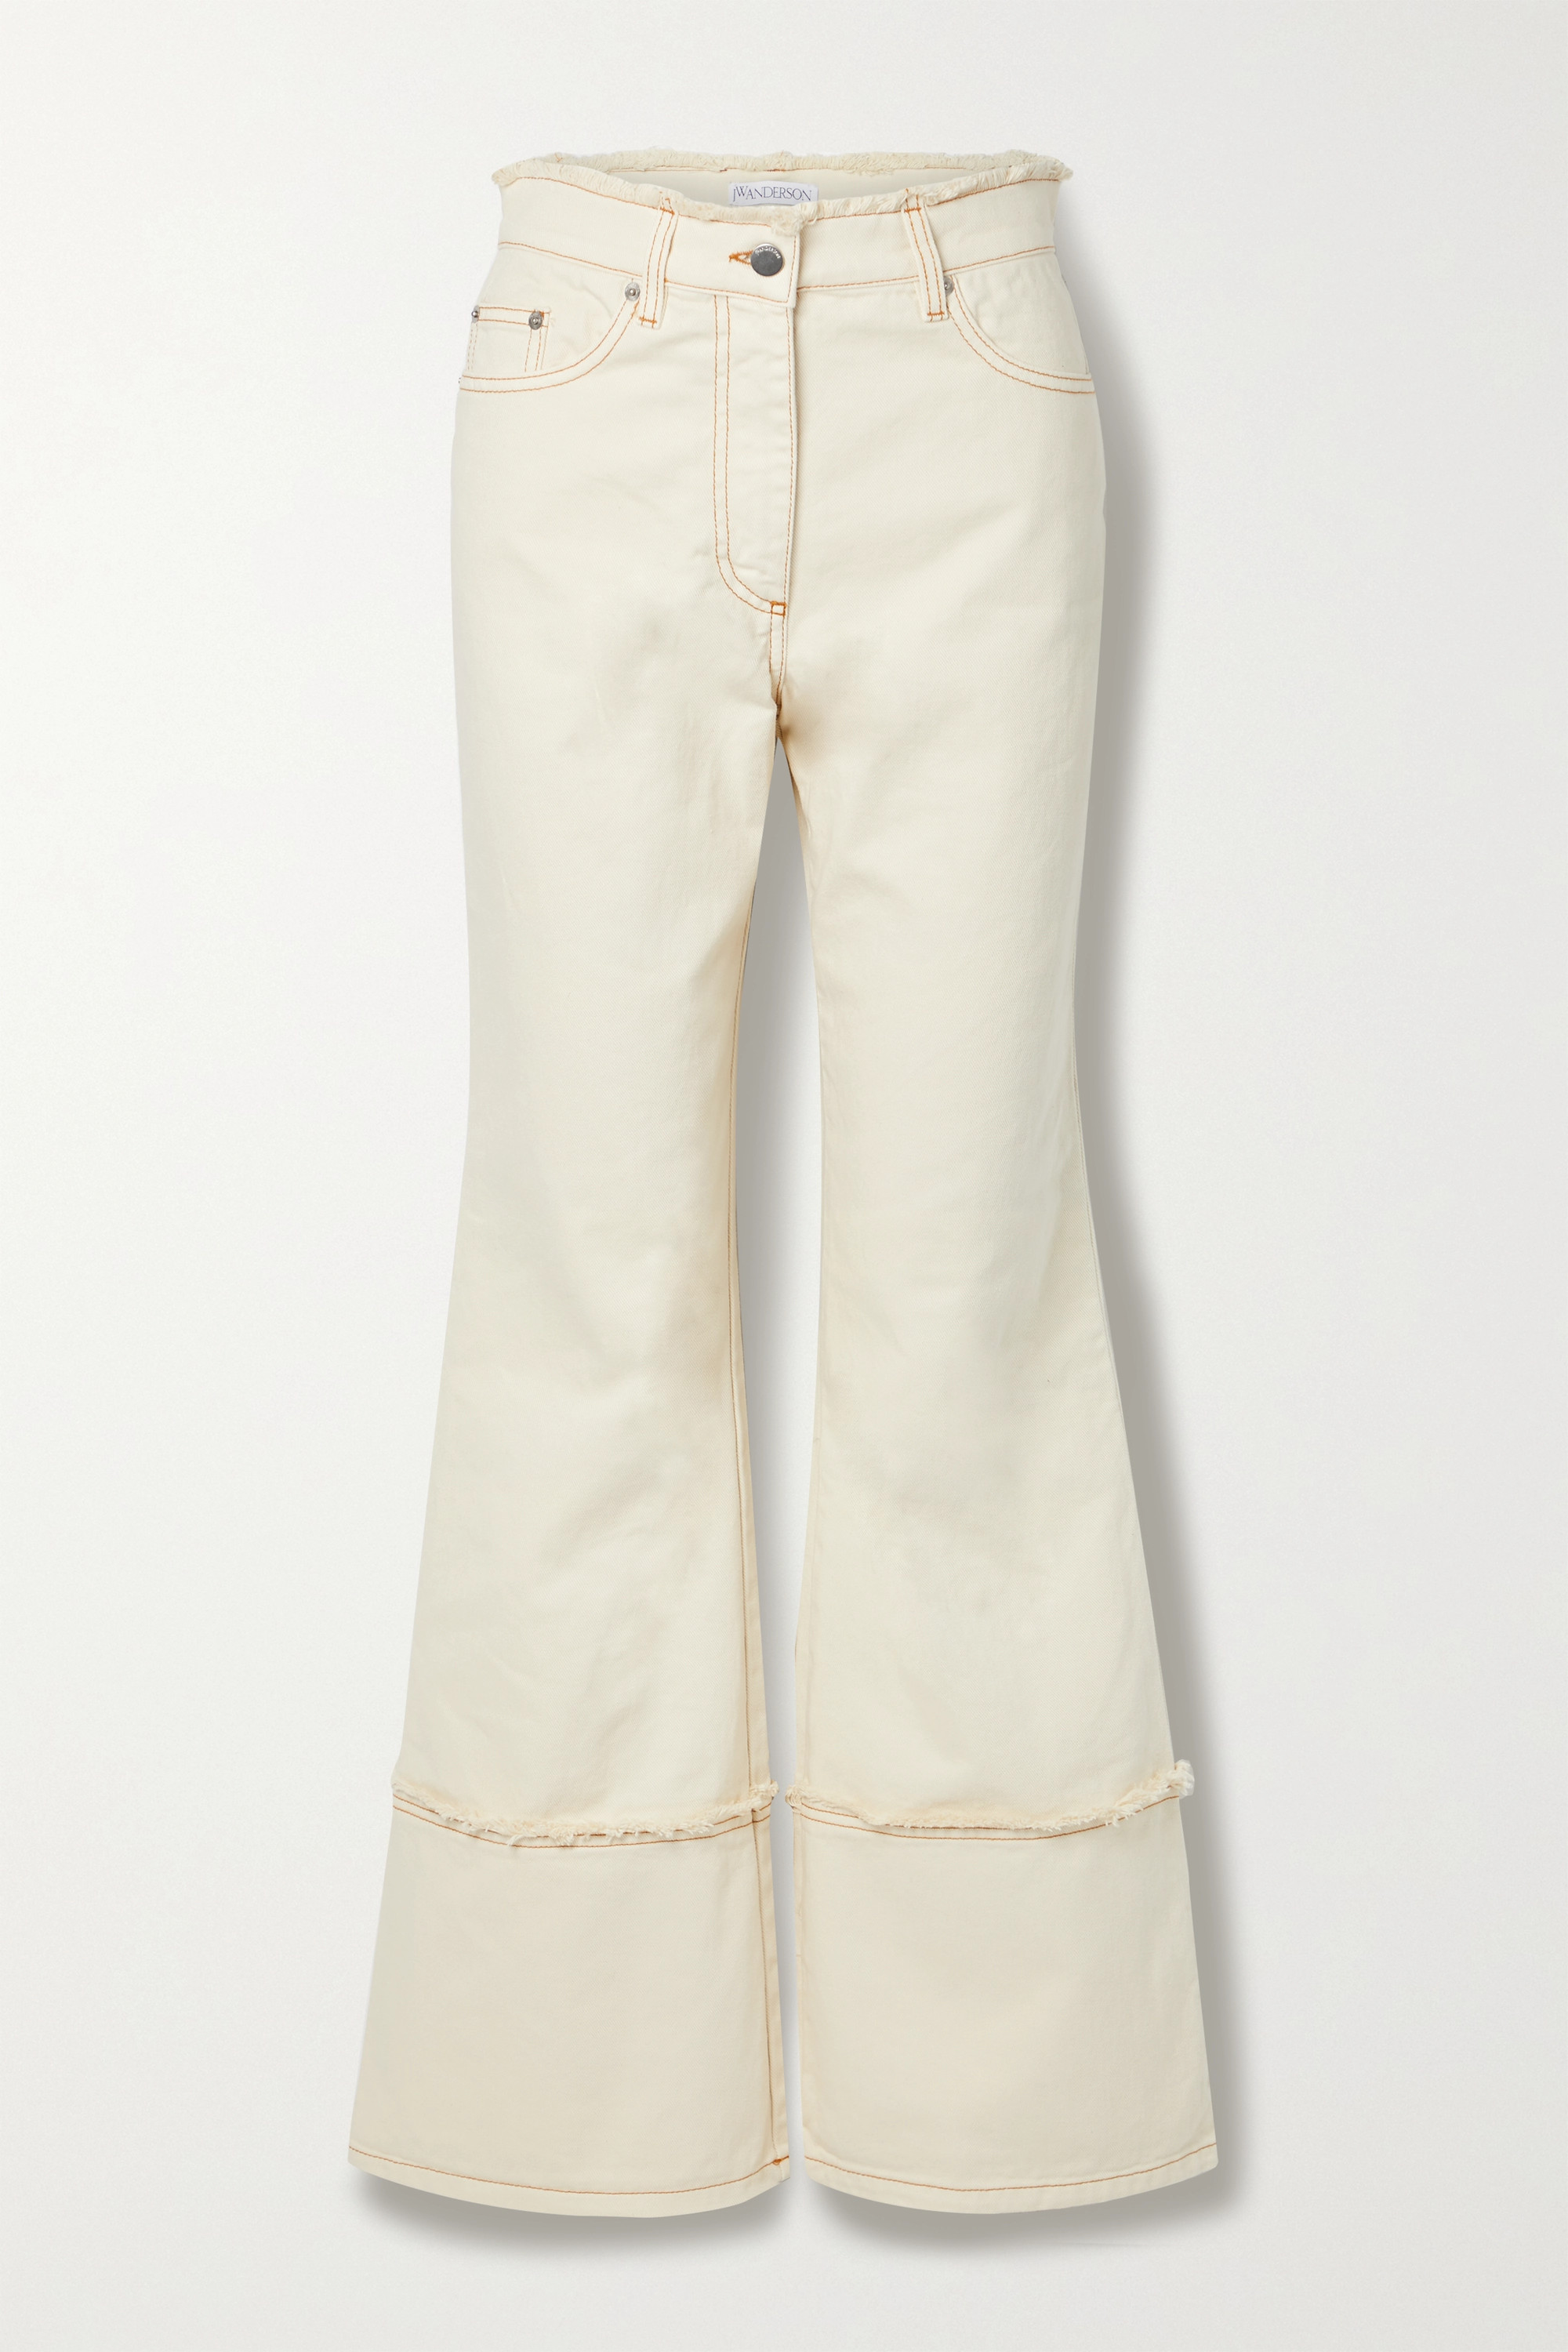 JW Anderson - Frayed high-rise flared jeans